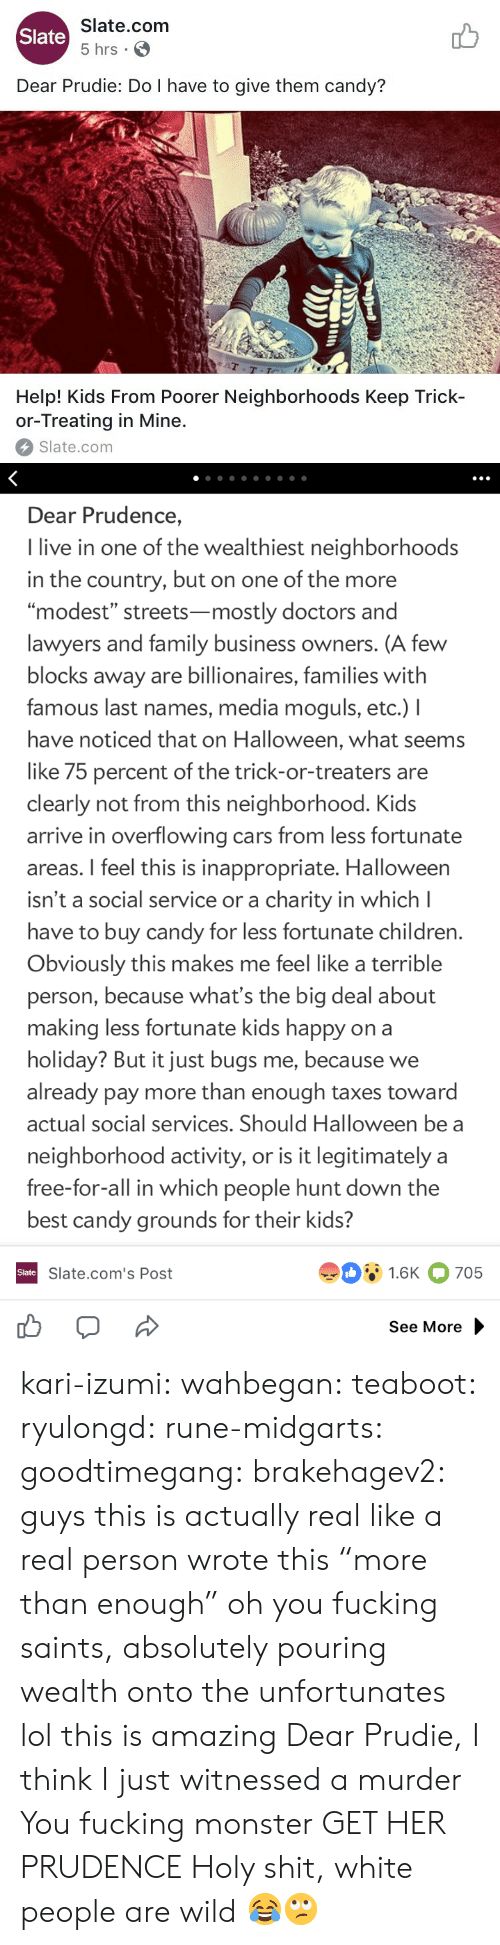 """Candy, Cars, and Children: Slate.com  5 hrs .  Slate  Dear Prudie: Do I have to give them candy?  aT  T-T  Help! Kids From Poorer Neighborhoods Keep Trick-  or-Treating in Mine.  Slate.com   Dear Prudence,  I live in one of the wealthiest neighborhoods  in the country, but on one of the more  """"modest"""" streets-mostly doctors and  lawyers and family business owners. (A few  blocks away are billionaires, families with  famous last names, media moguls, etc.) I  have noticed that on Halloween, what seems  like 75 percent of the trick-or-treaters are  clearly not from this neighborhood. Kids  arrive in overflowing cars from less fortunate  areas. I feel this is inappropriate. Halloween  isn't a social service or a charity in which l  have to buy candy for less fortunate children  Obviously this makes me feel like a terrible  person, because what's the big deal about  making less fortunate kids happy on a  holiday? But it just bugs me, because we  already pay more than enough taxes toward  actual social services. Should Halloween be a  neighborhood activity, or is it legitimately a  free-for-all in which people hunt down the  best candy grounds for their kids?  91.6K 705  Slate  Slate.com's Post  See More kari-izumi: wahbegan:  teaboot:  ryulongd:  rune-midgarts:  goodtimegang:  brakehagev2:  guys this is actually real like a real person wrote this  """"more than enough"""" oh you fucking saints, absolutely pouring wealth onto the unfortunates   lol this is amazing   Dear Prudie, I think I just witnessed a murder  You fucking monster  GET HER PRUDENCE   Holy shit, white people are wild 😂🙄"""